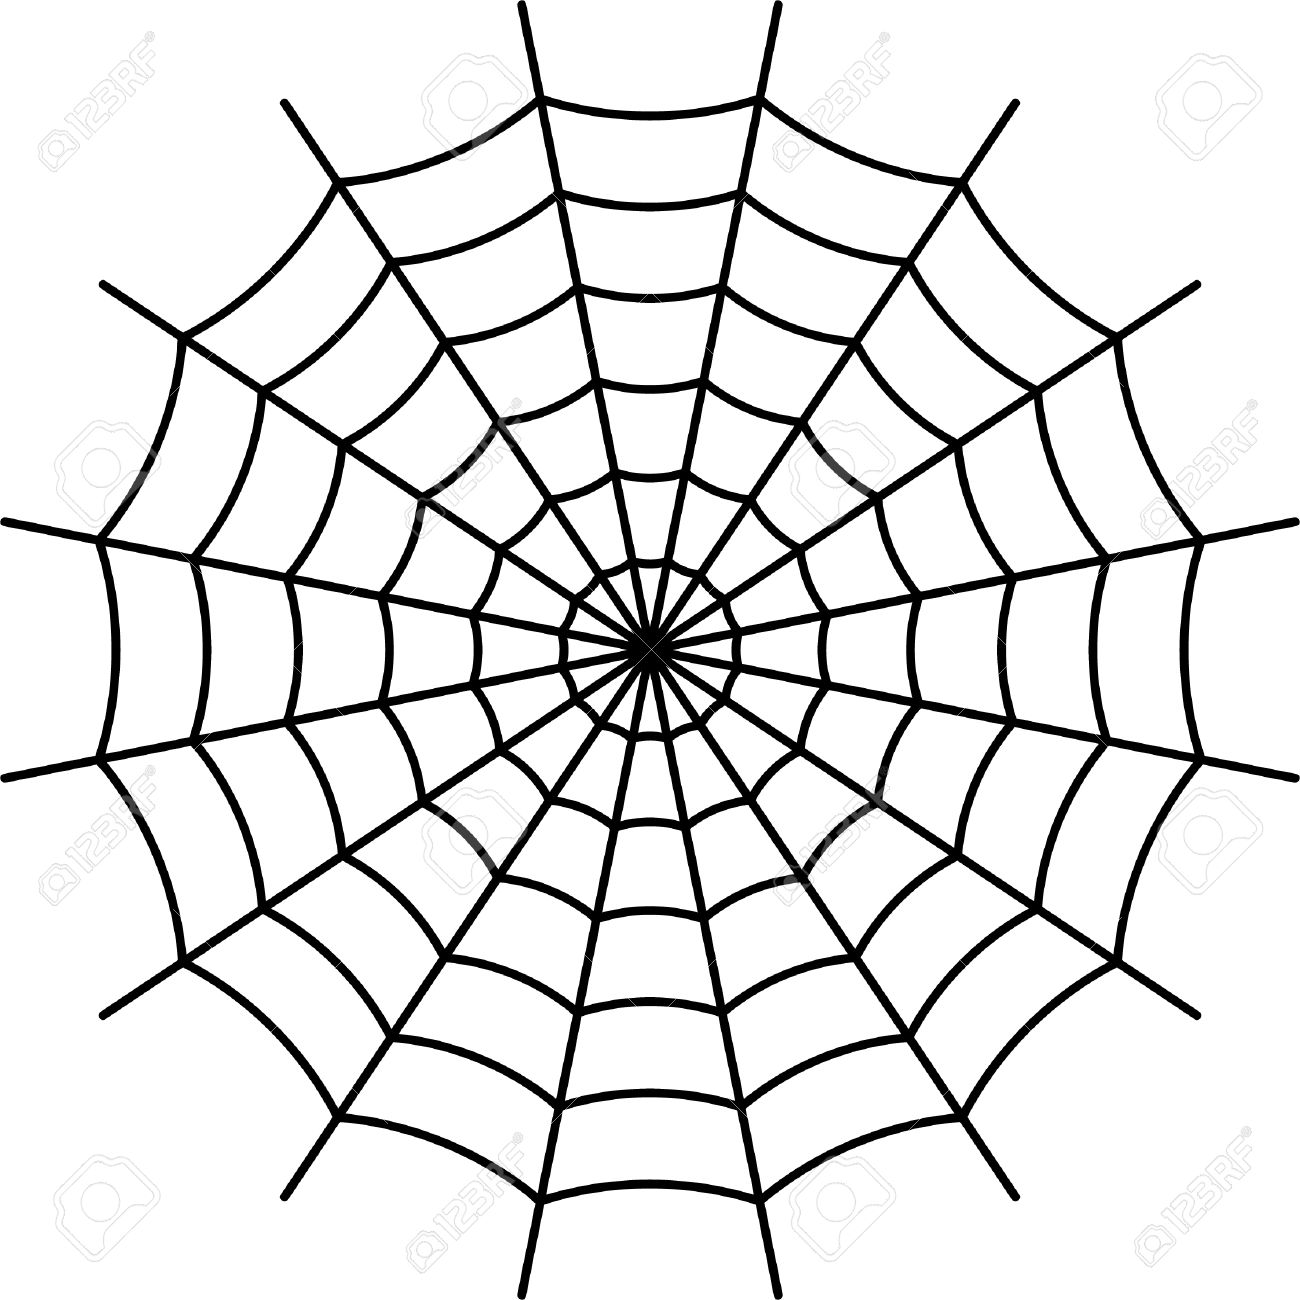 spider web black vector royalty free cliparts vectors and stock rh 123rf com spider web vector image spider web vector free download